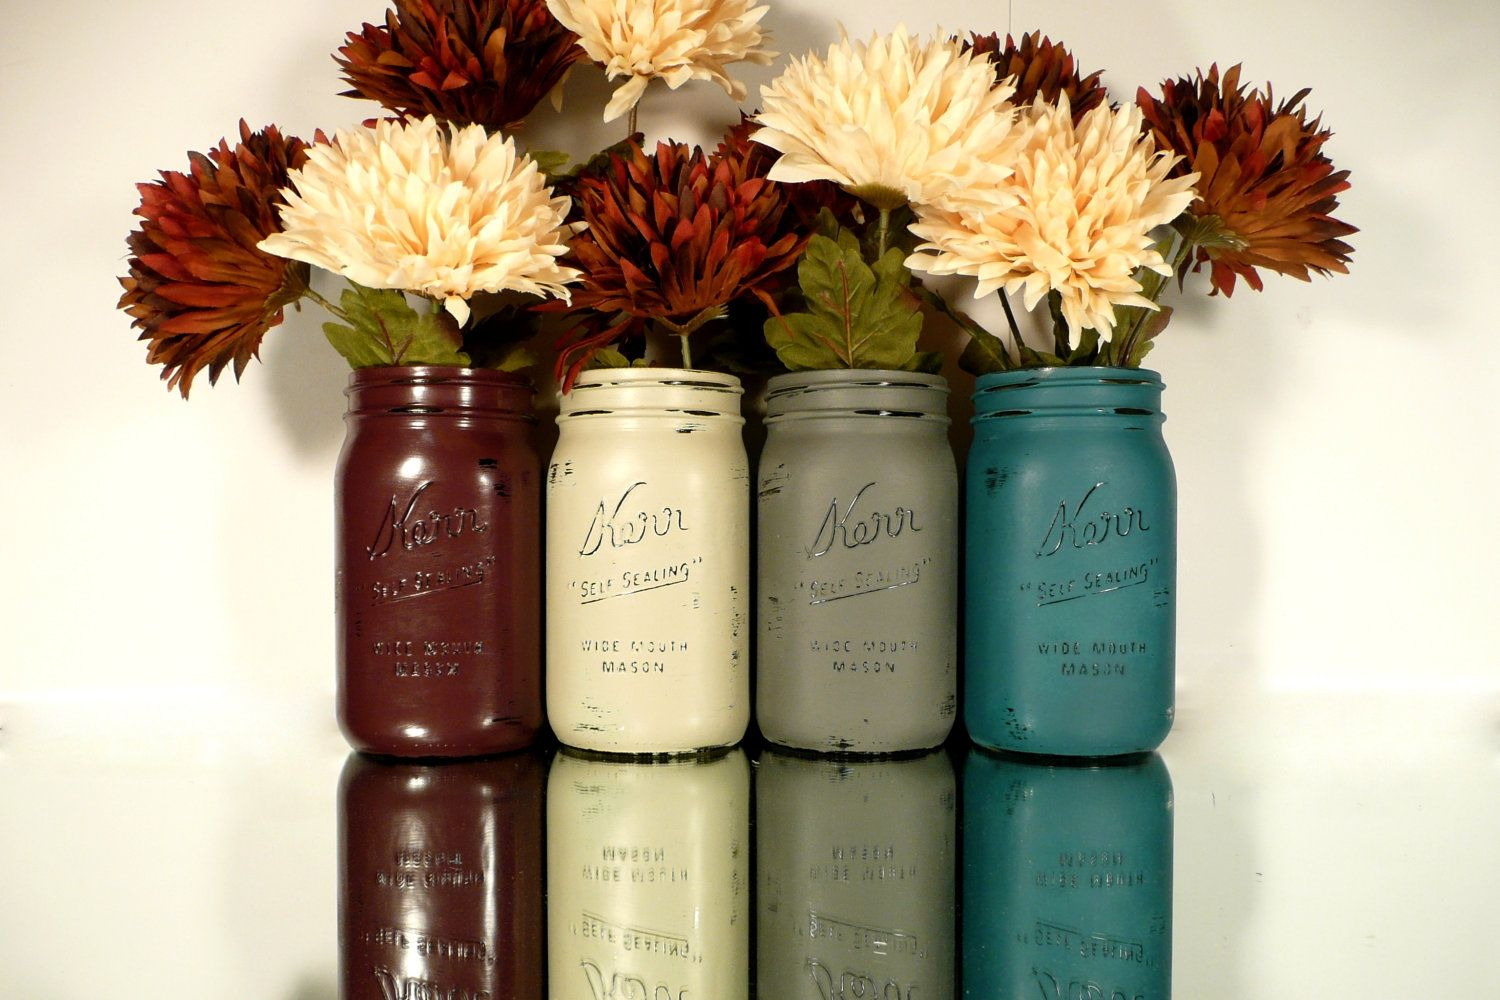 Pin by monique madrid on ideas pinterest mason jar vases winter